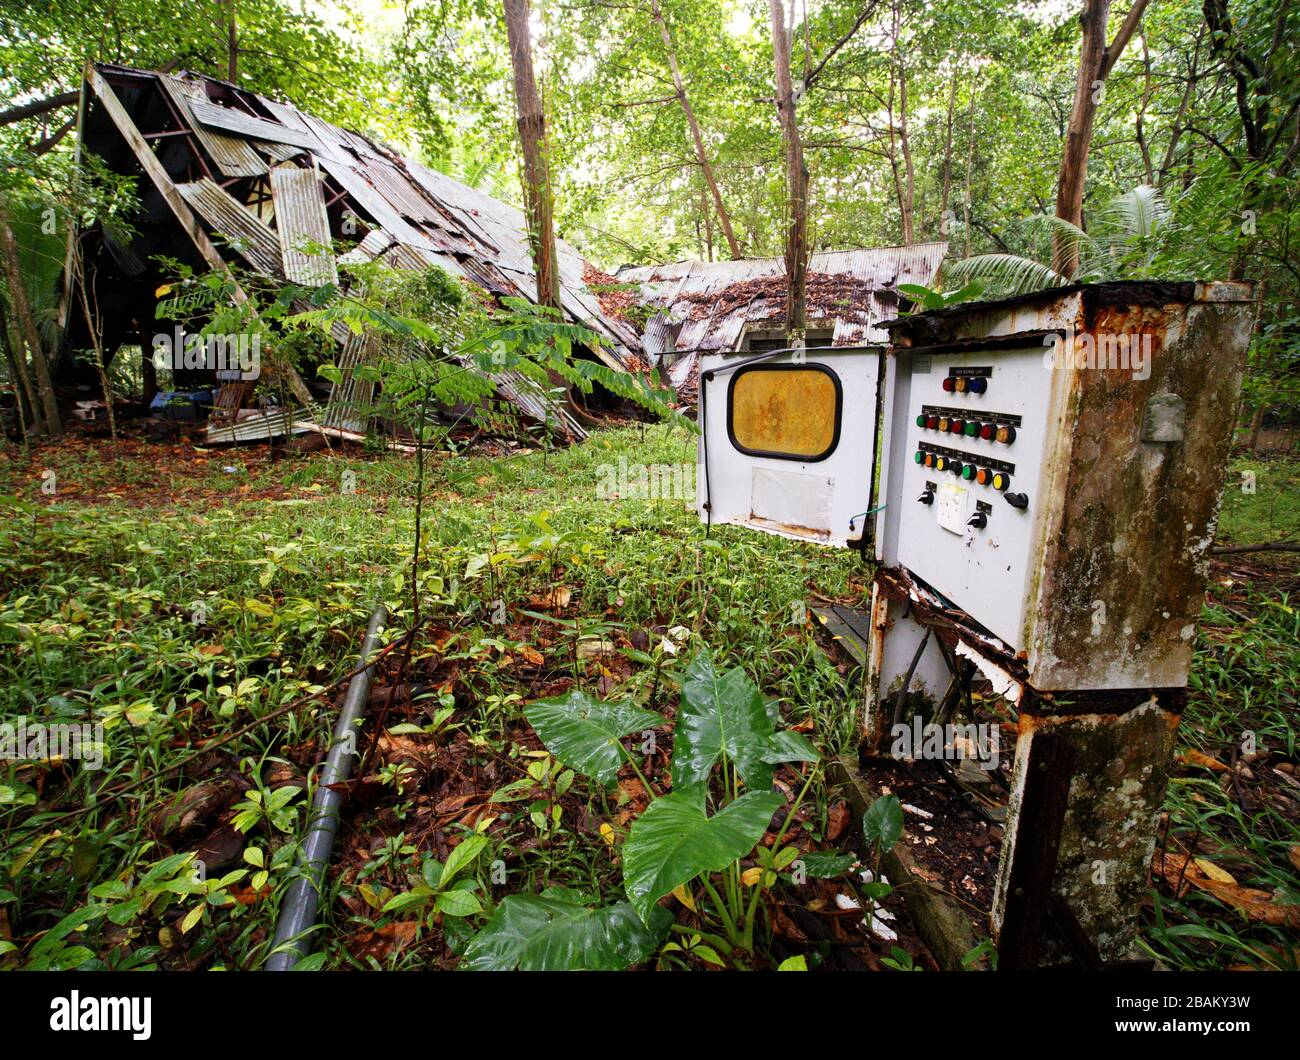 Electrical old switch box outdoor in the rainforest with a collapsed building the background, Mahe, Seychelles Stock Photo